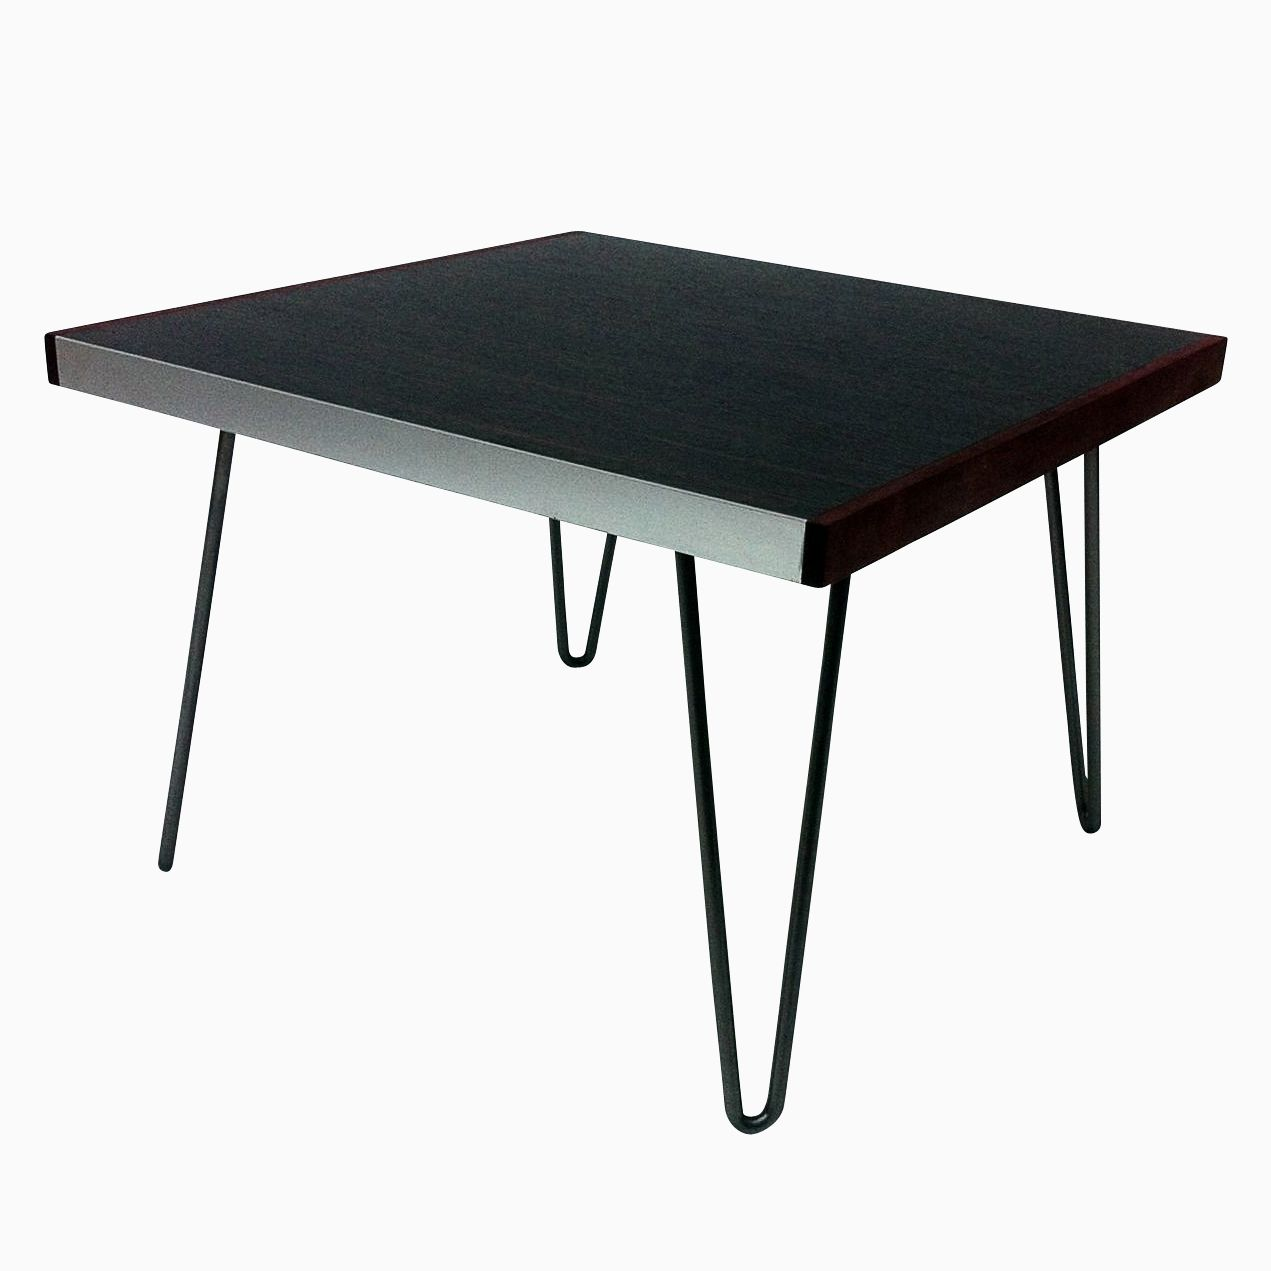 Buy Custom Mid Century Square Coffee Table W Hairpin Legs Made To Order From Studio1212